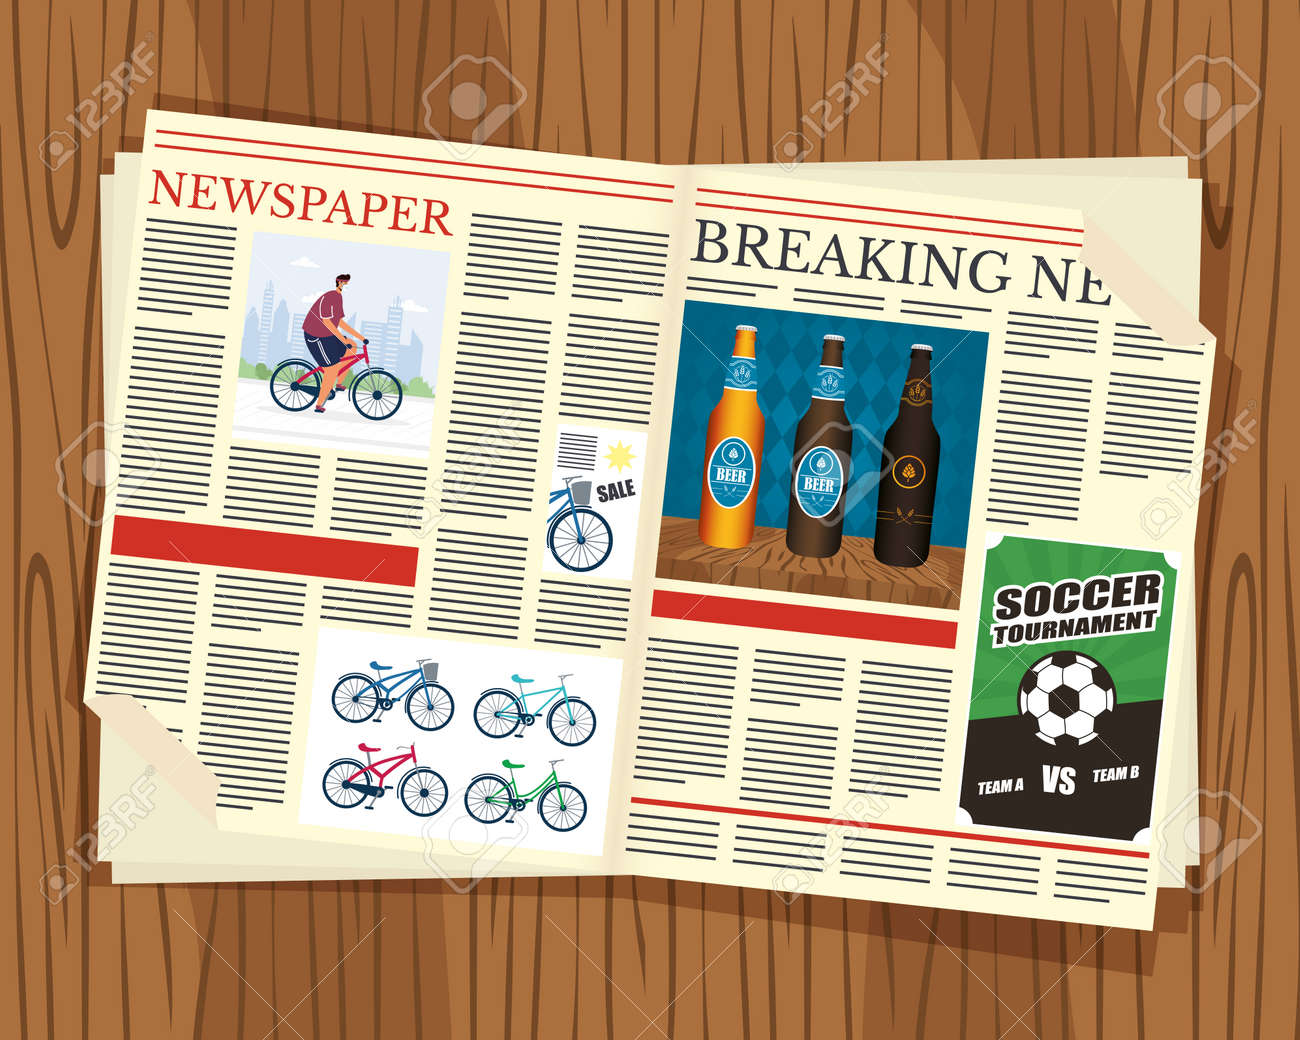 news paper communication with wooden background vector illustration design - 157670124